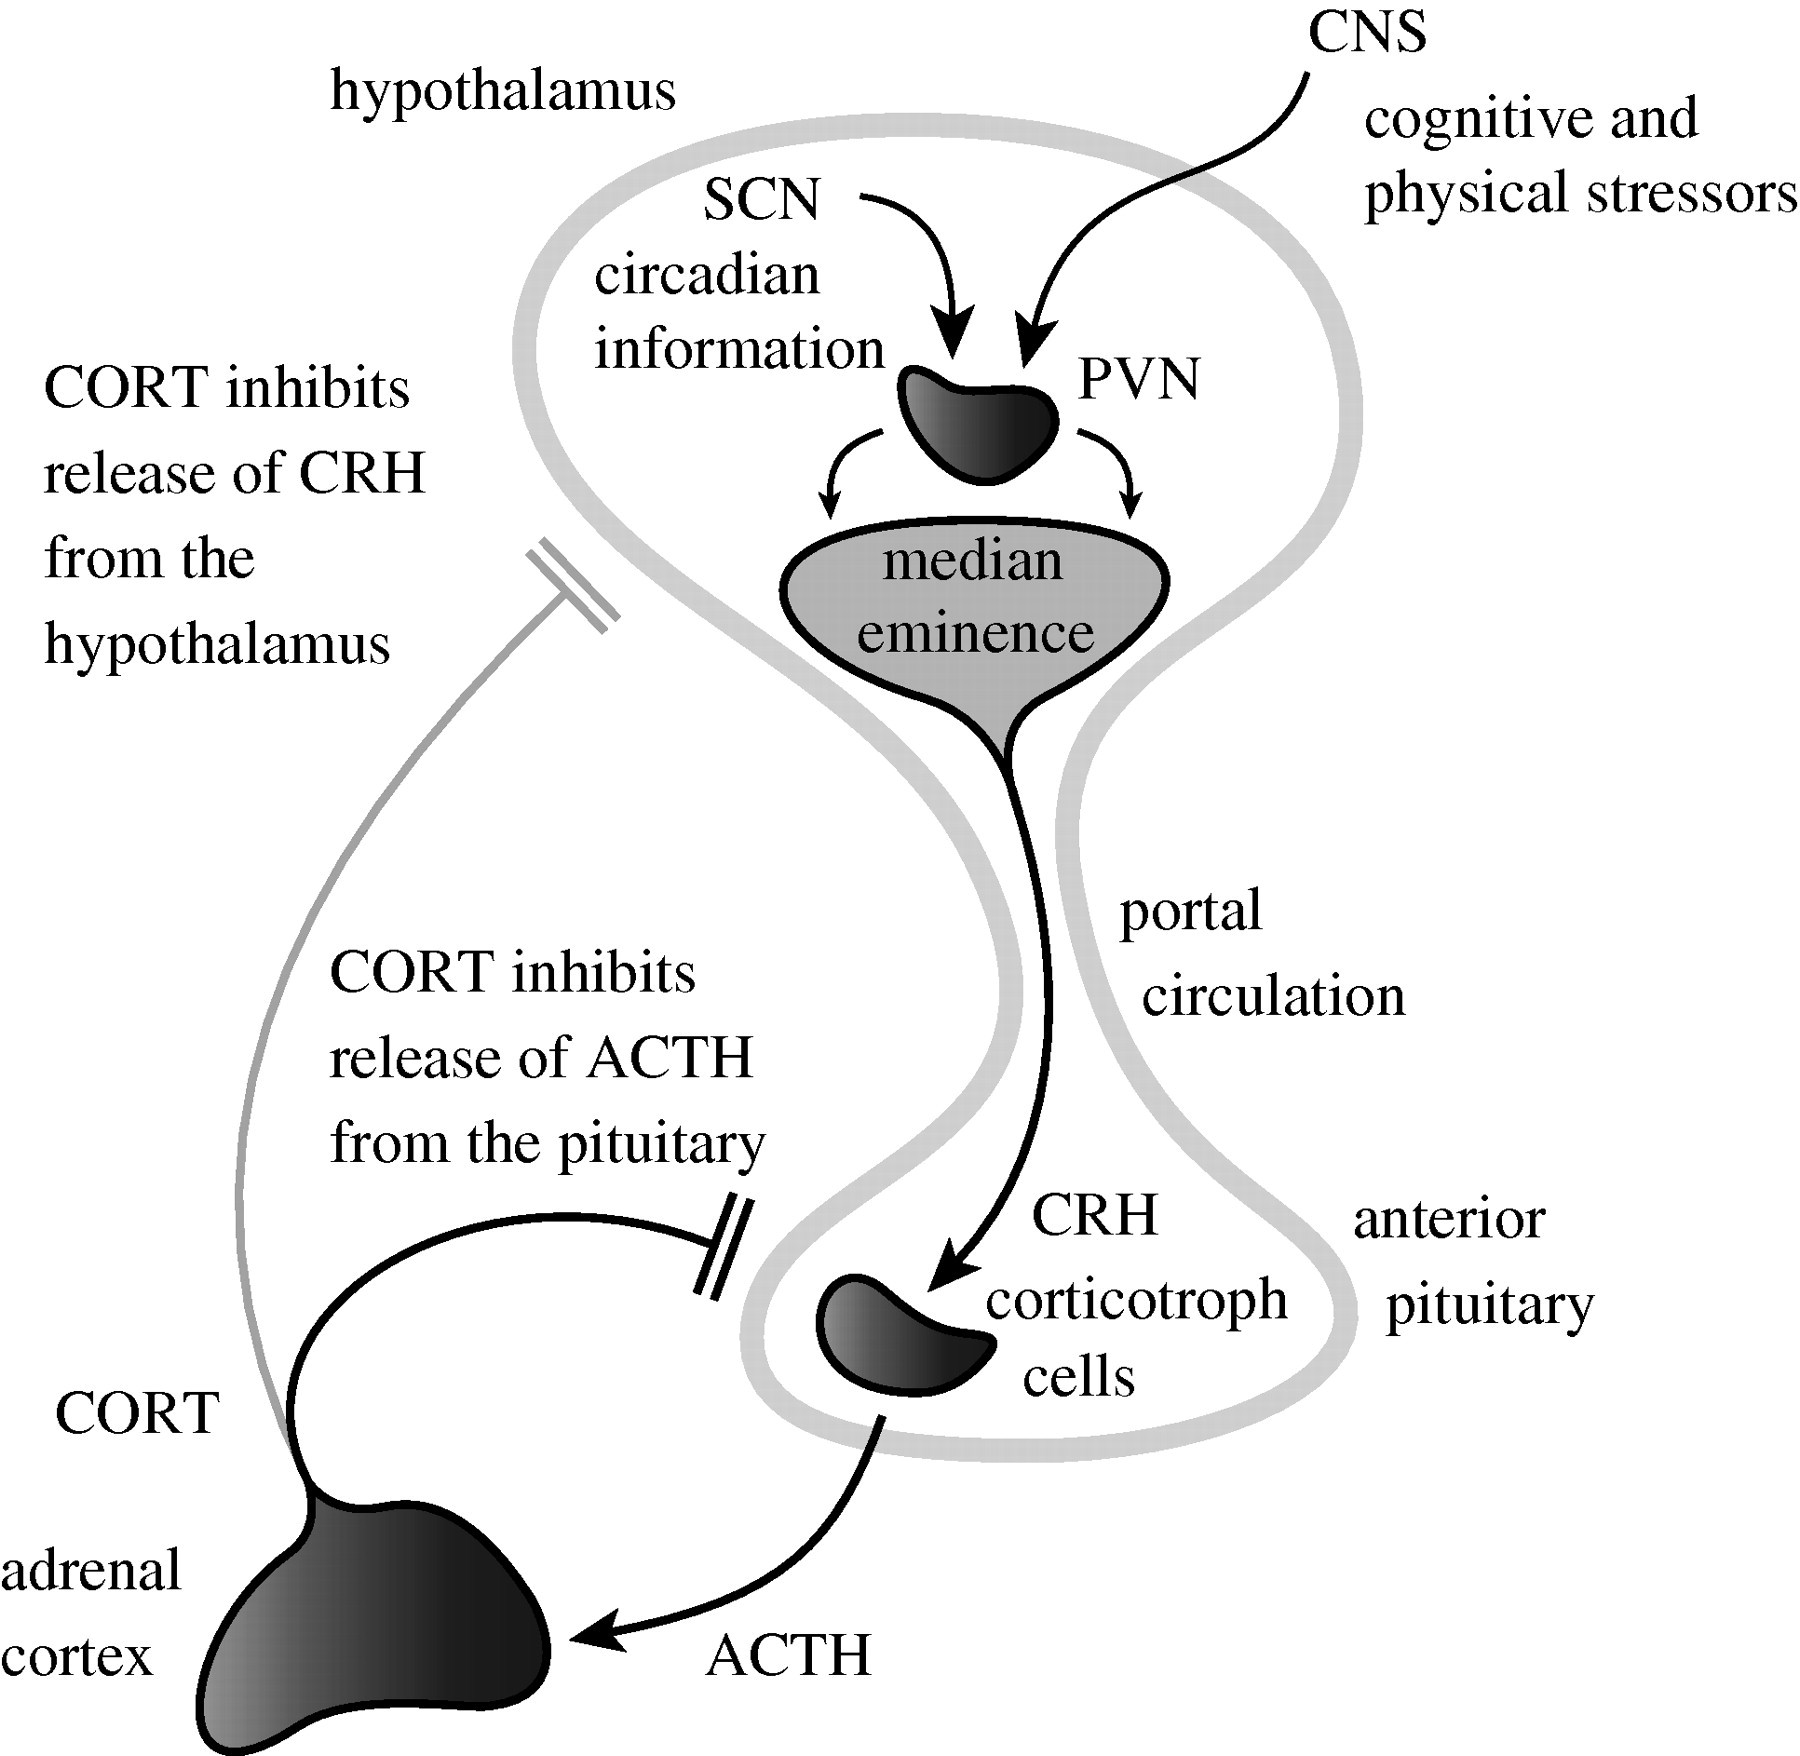 Origin Of Ultradian Pulsatility In The Hypothalamic